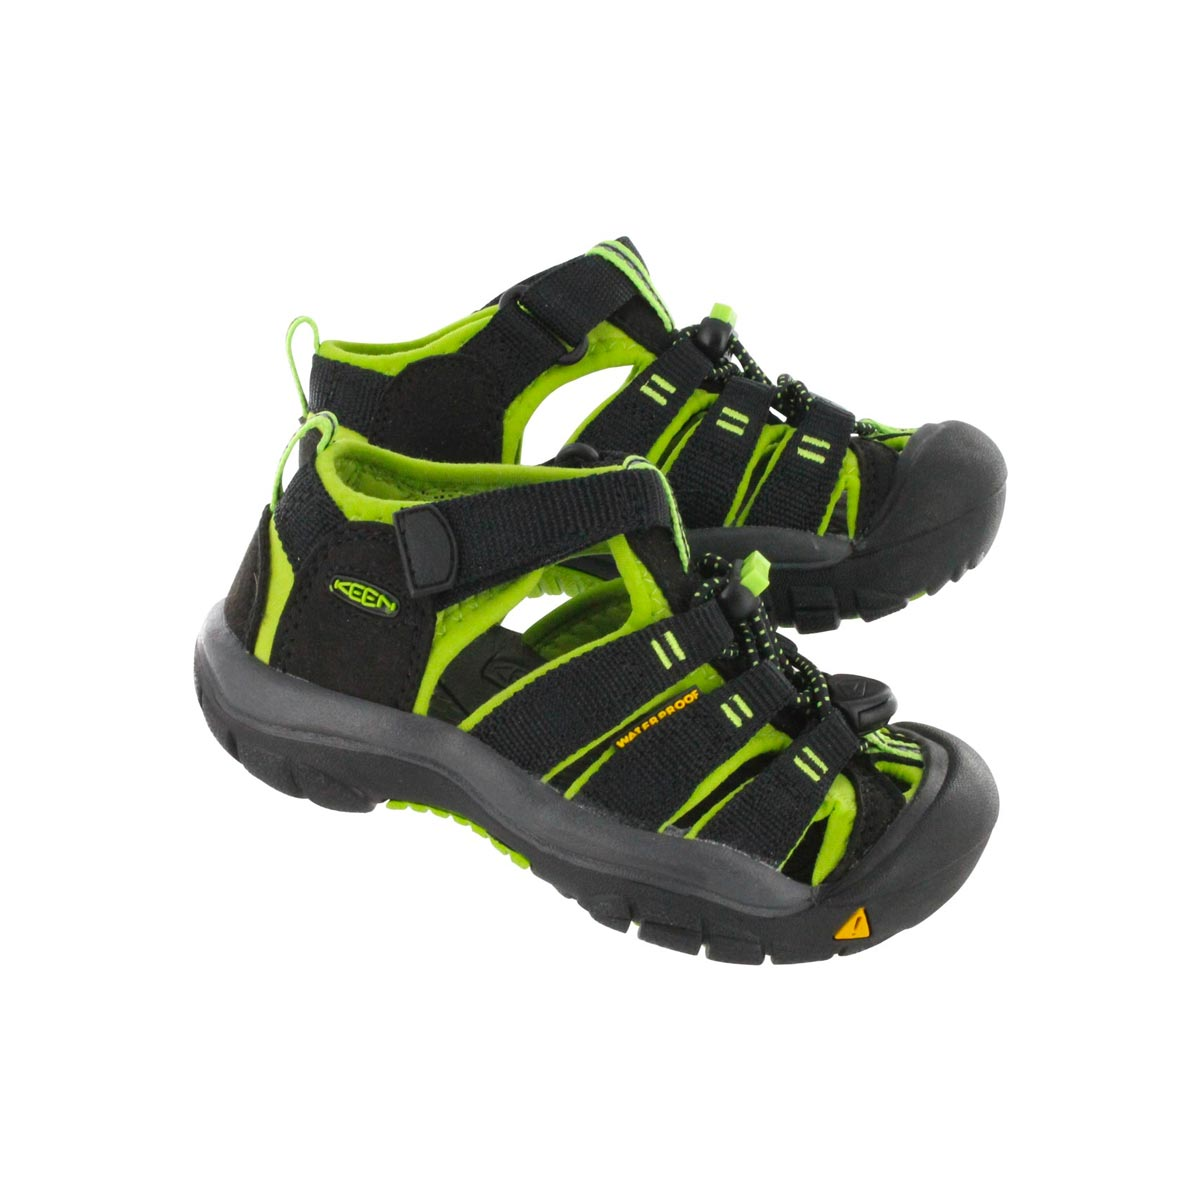 Inft Newport H2 Electric blk/lime sandal